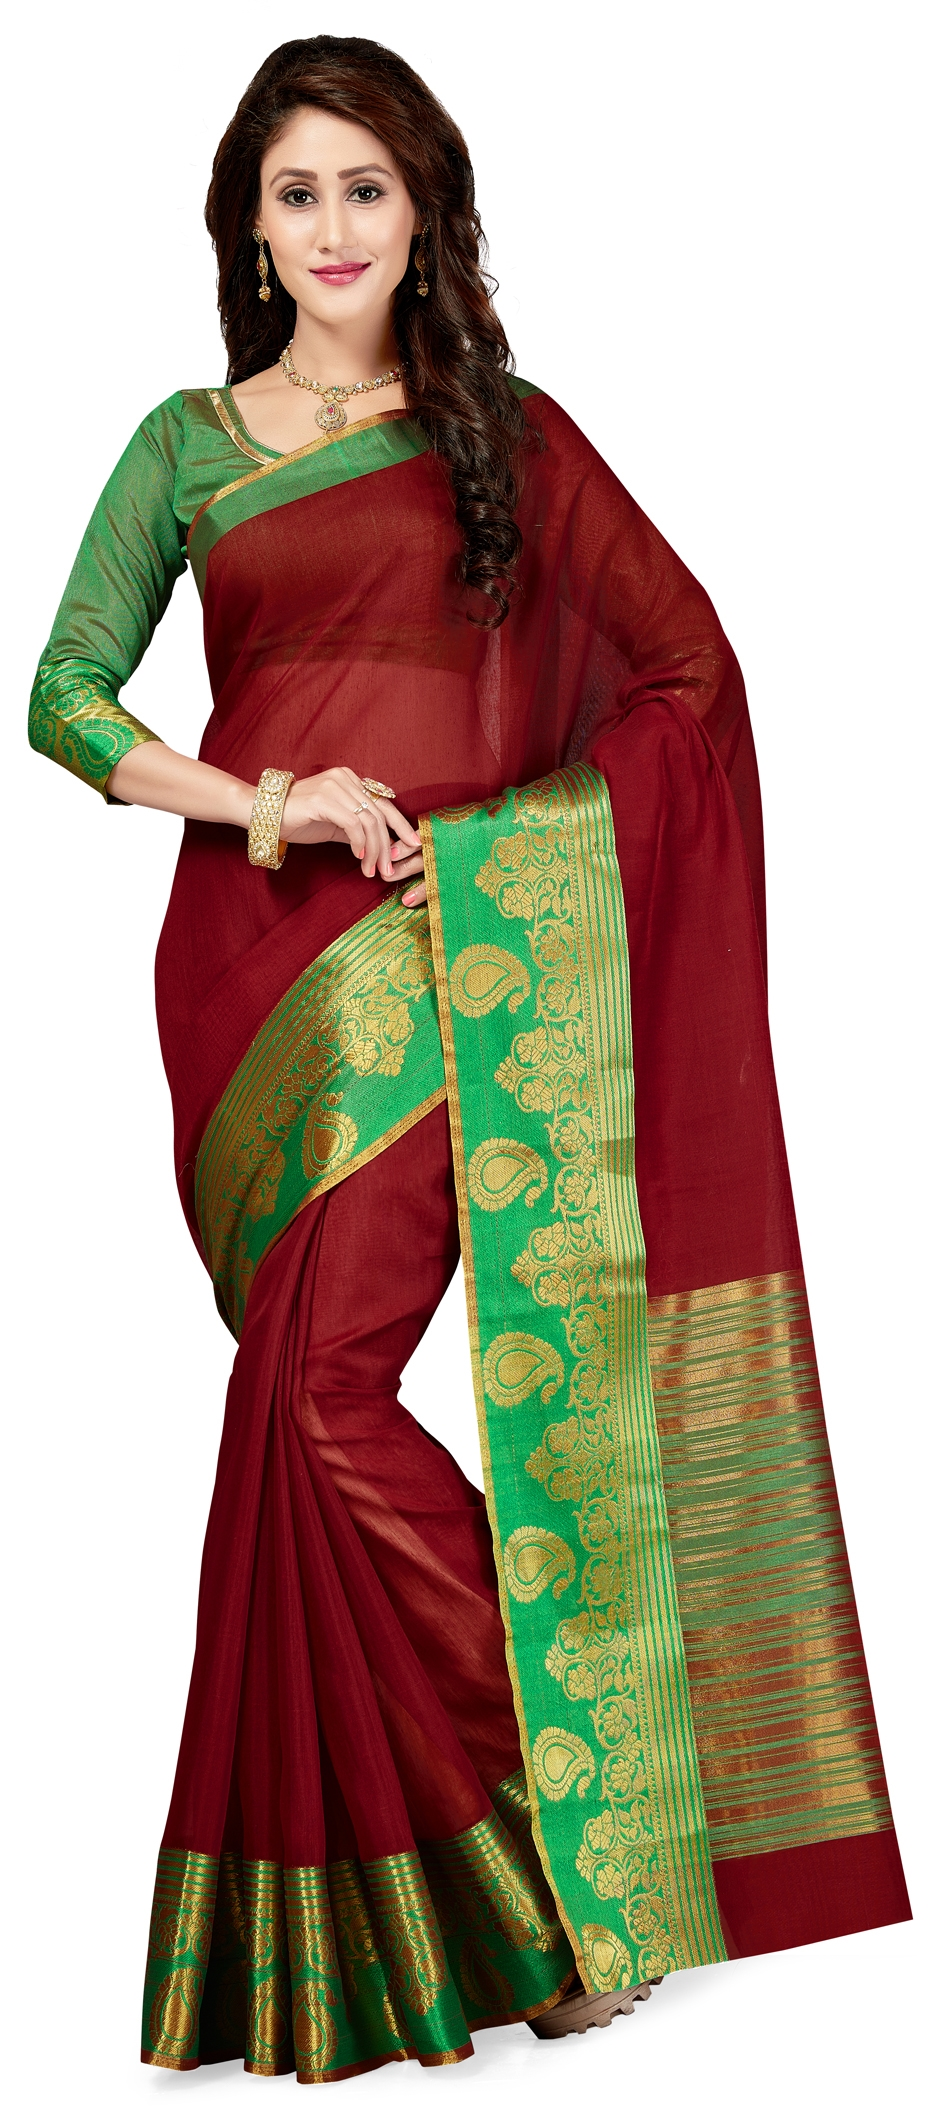 771569: Red and Maroon color family Party Wear Sarees with matching ...